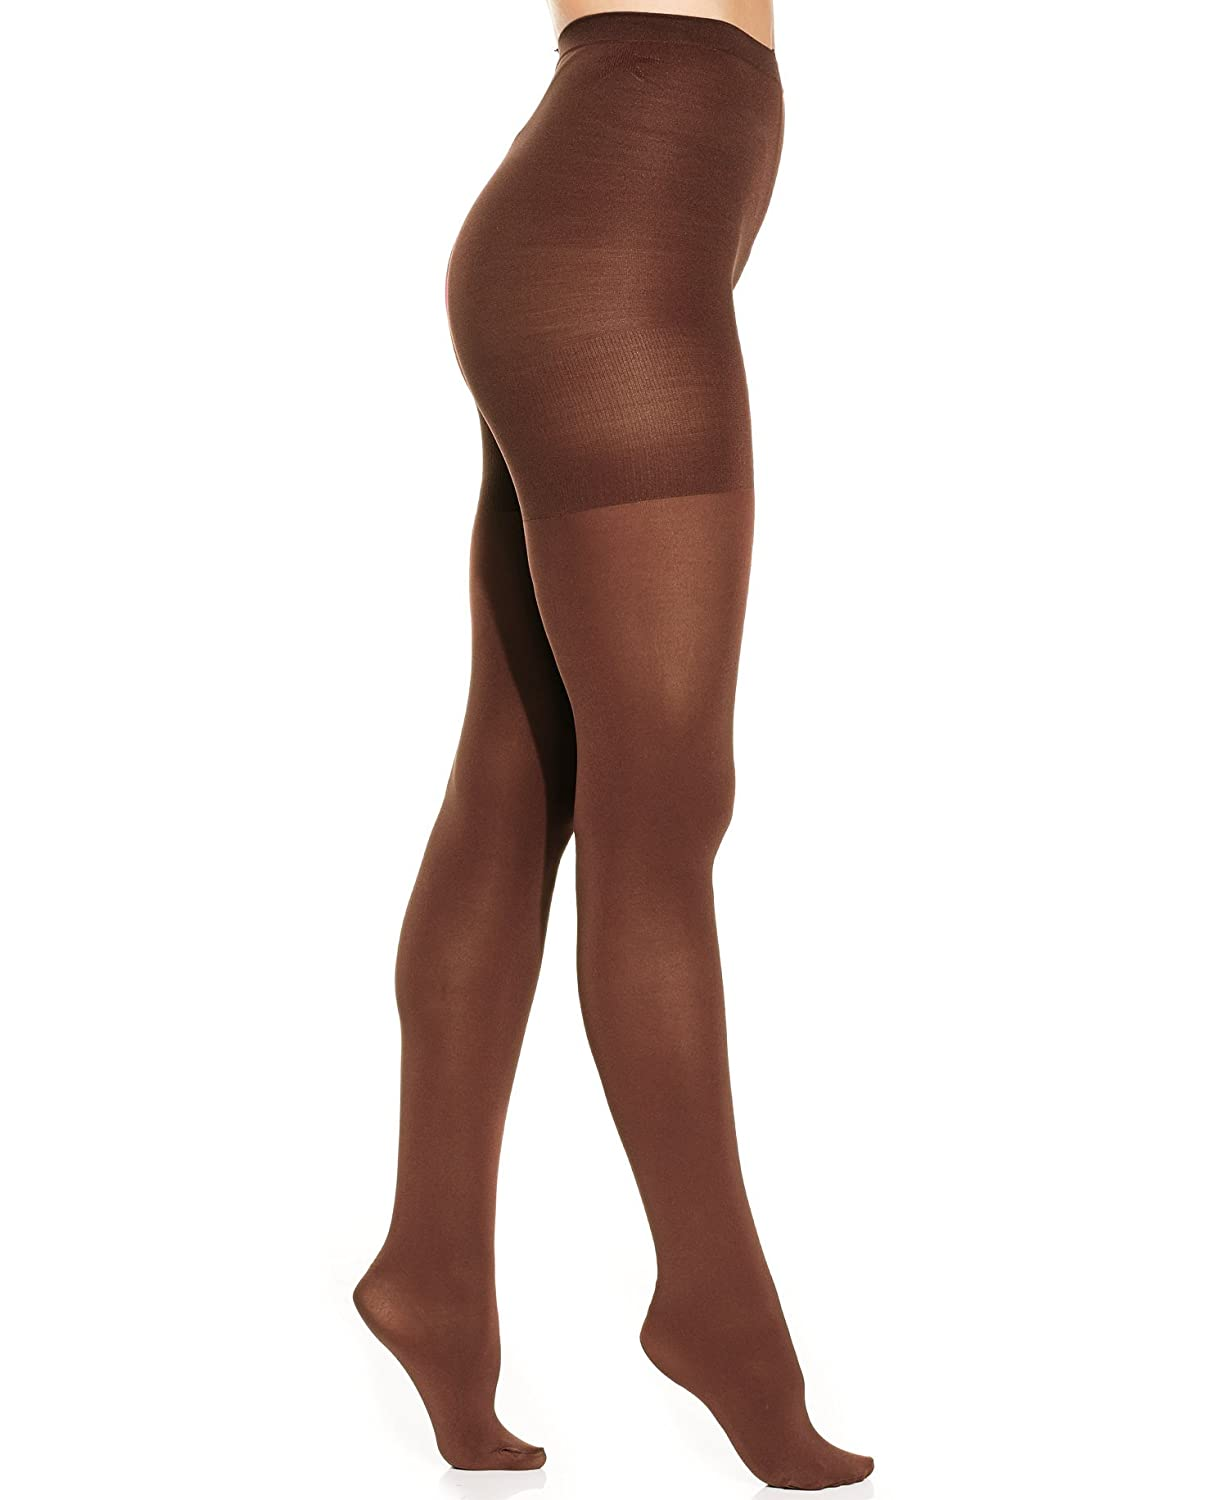 4a7173593e8f5 Star Power by Spanx Women's Shaping Tights (F, Java) at Amazon Women's  Clothing store: